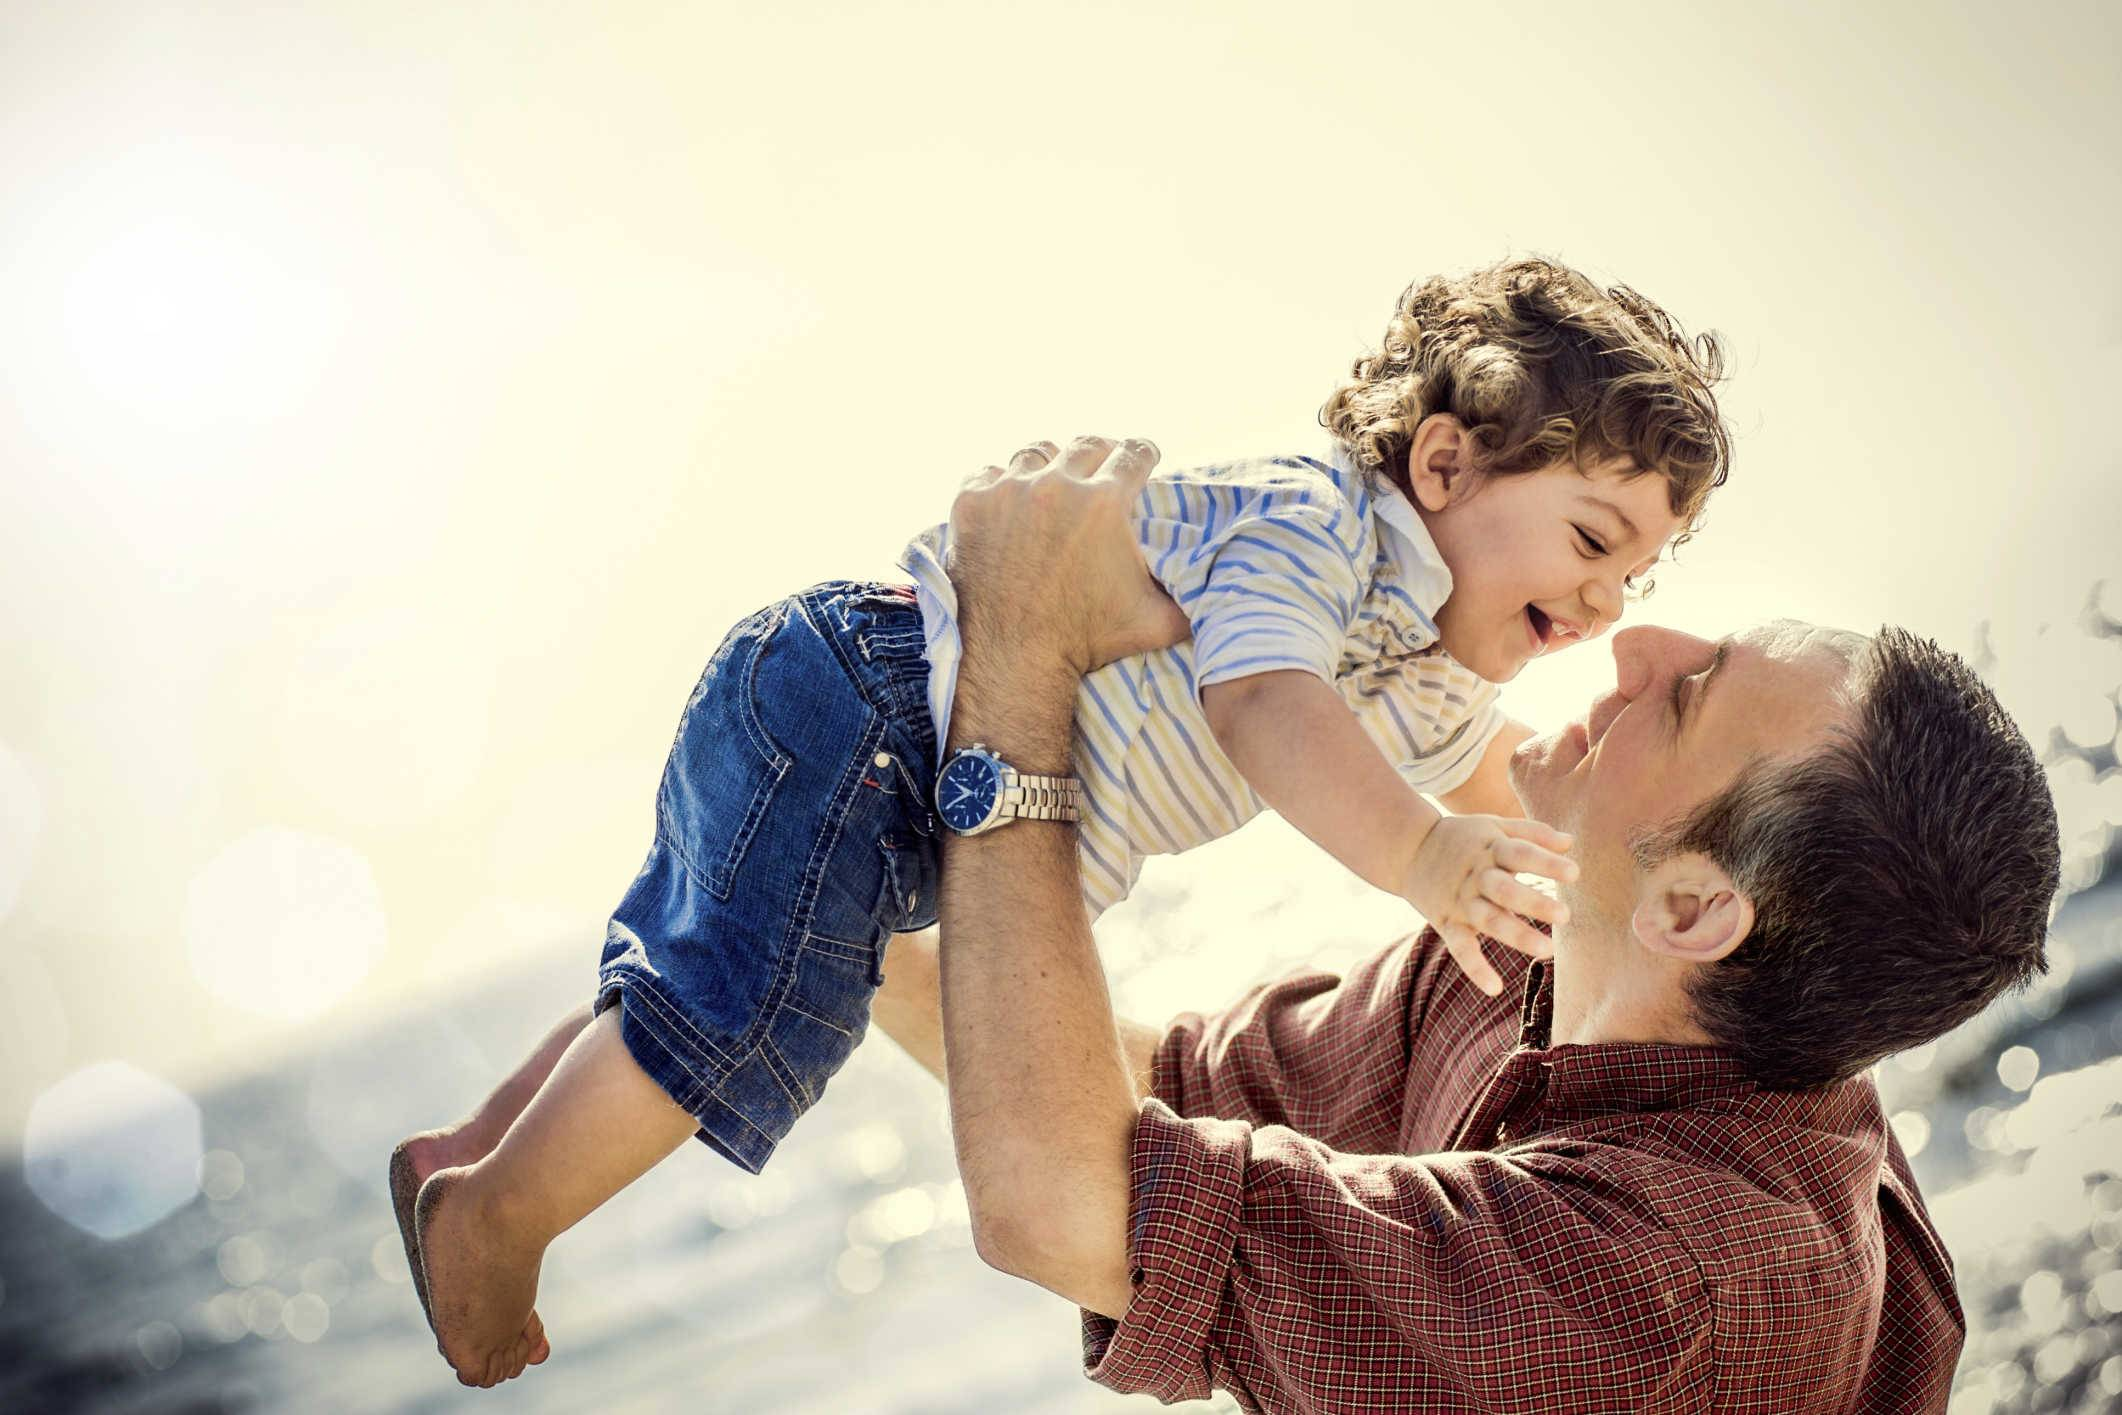 Fathers occupy a special place in our lives. They are interwoven with who we are.